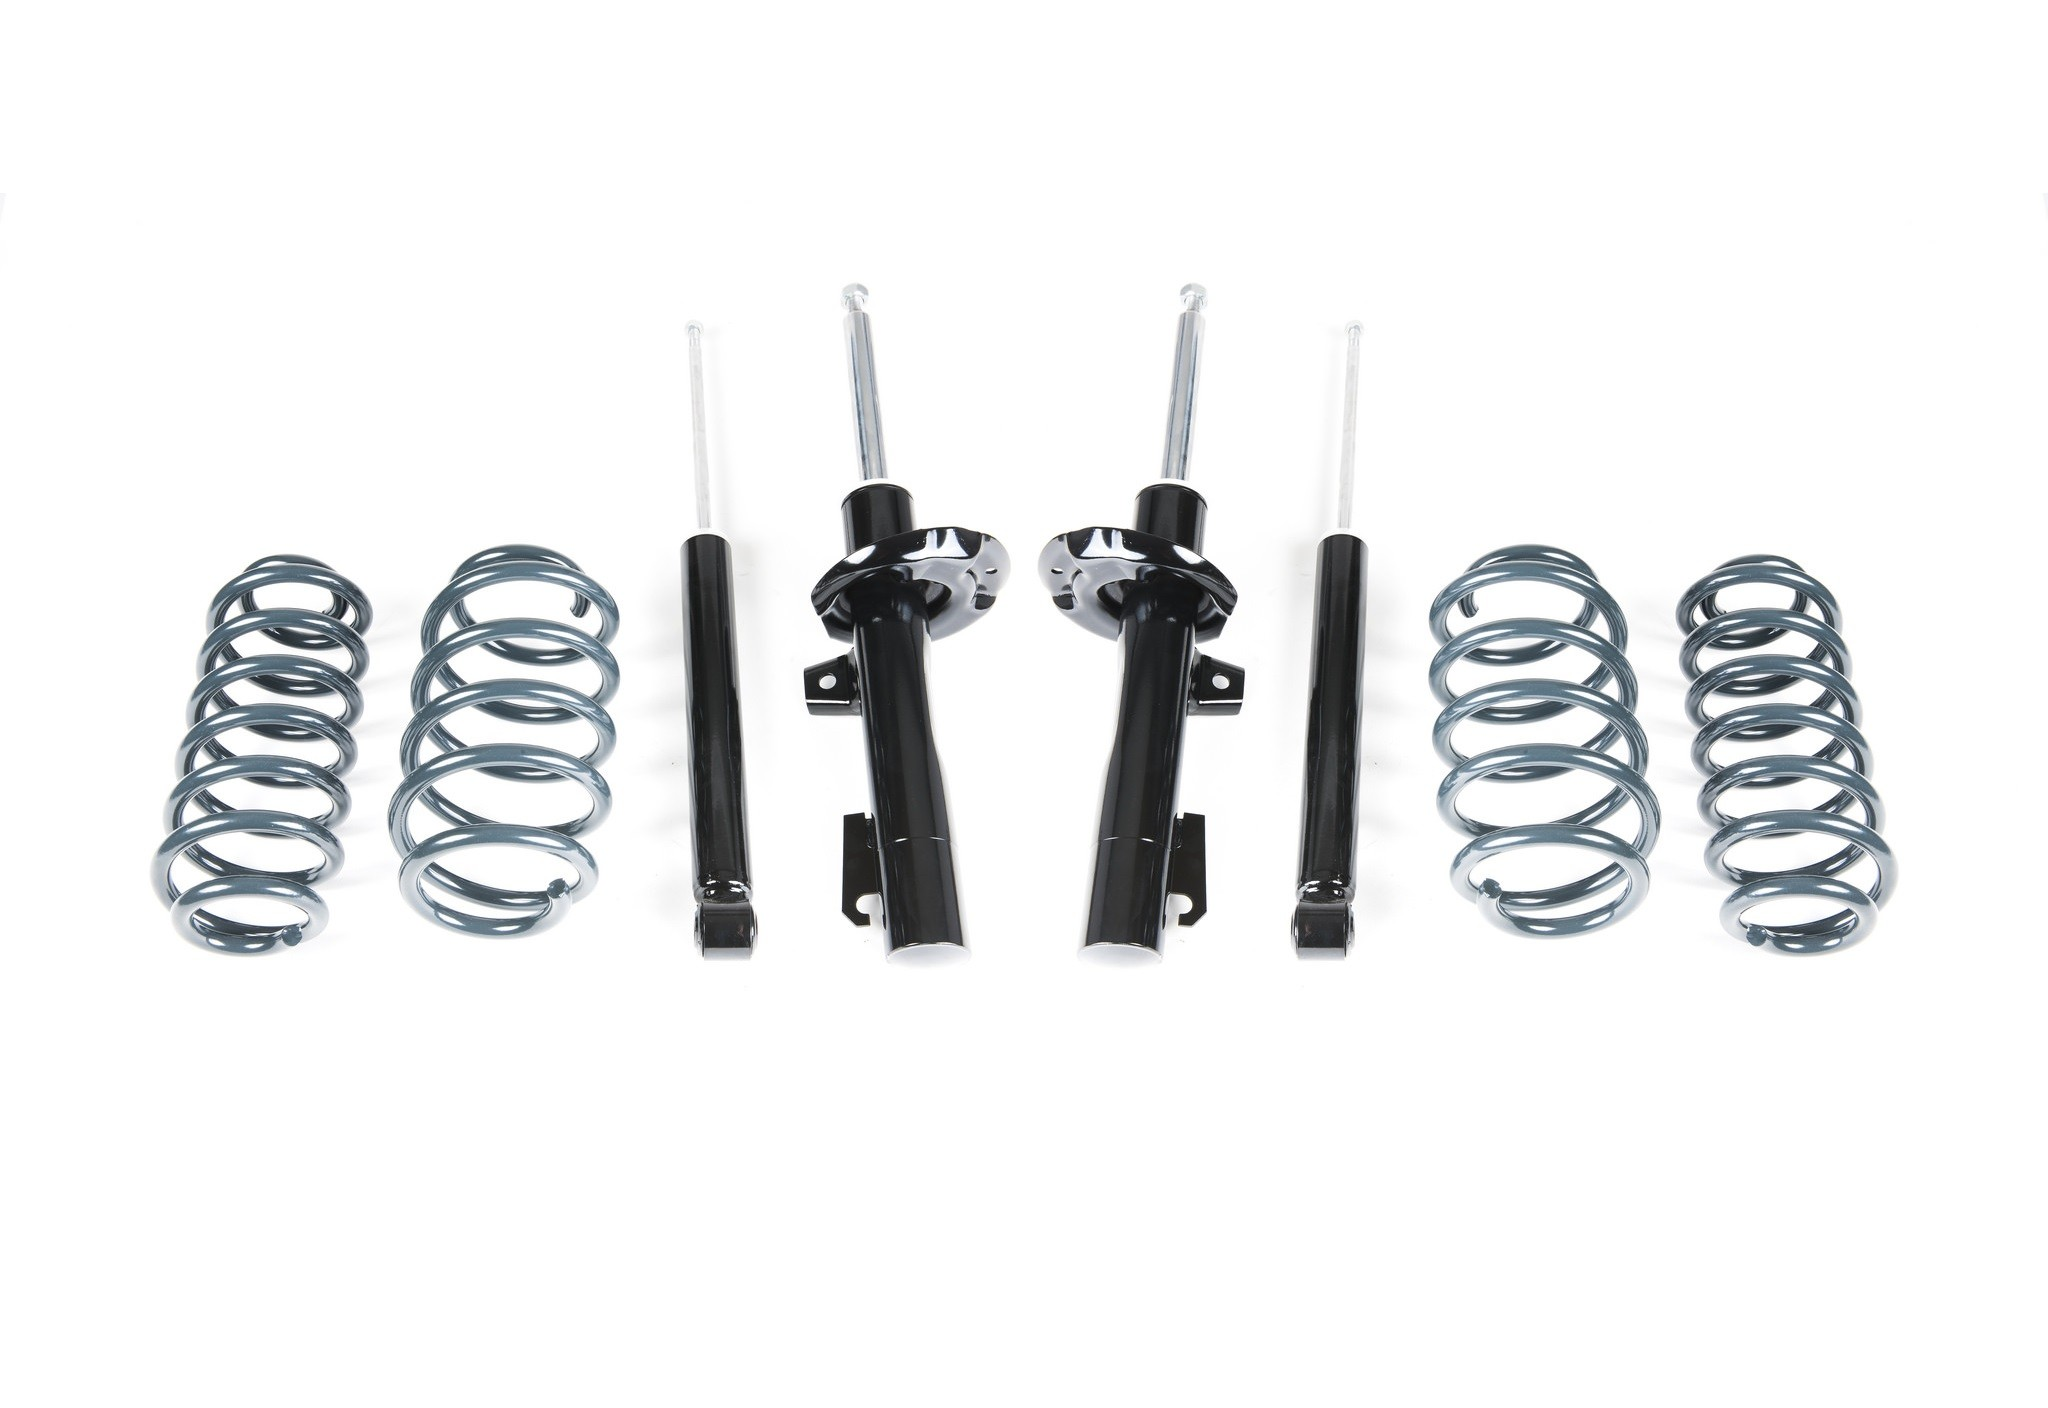 VWR Sport Spring & Damper Kit For MQB: MK7 Golf/Audi A3 8V